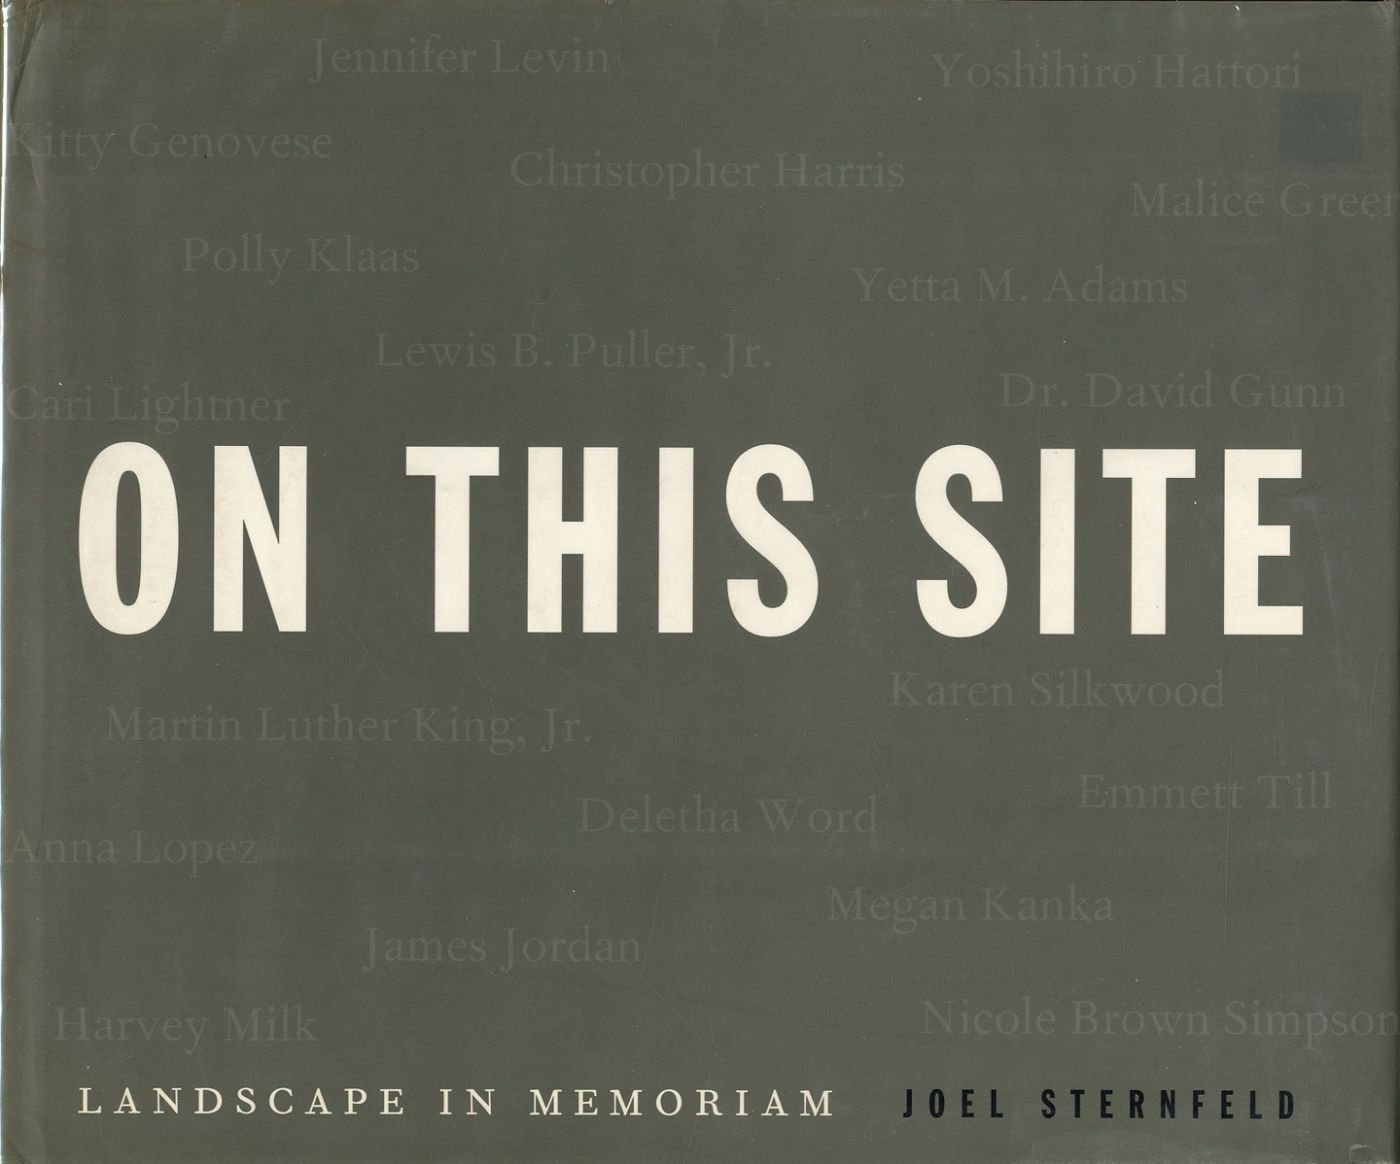 Joel Sternfeld: On This Site: Landscape in Memoriam